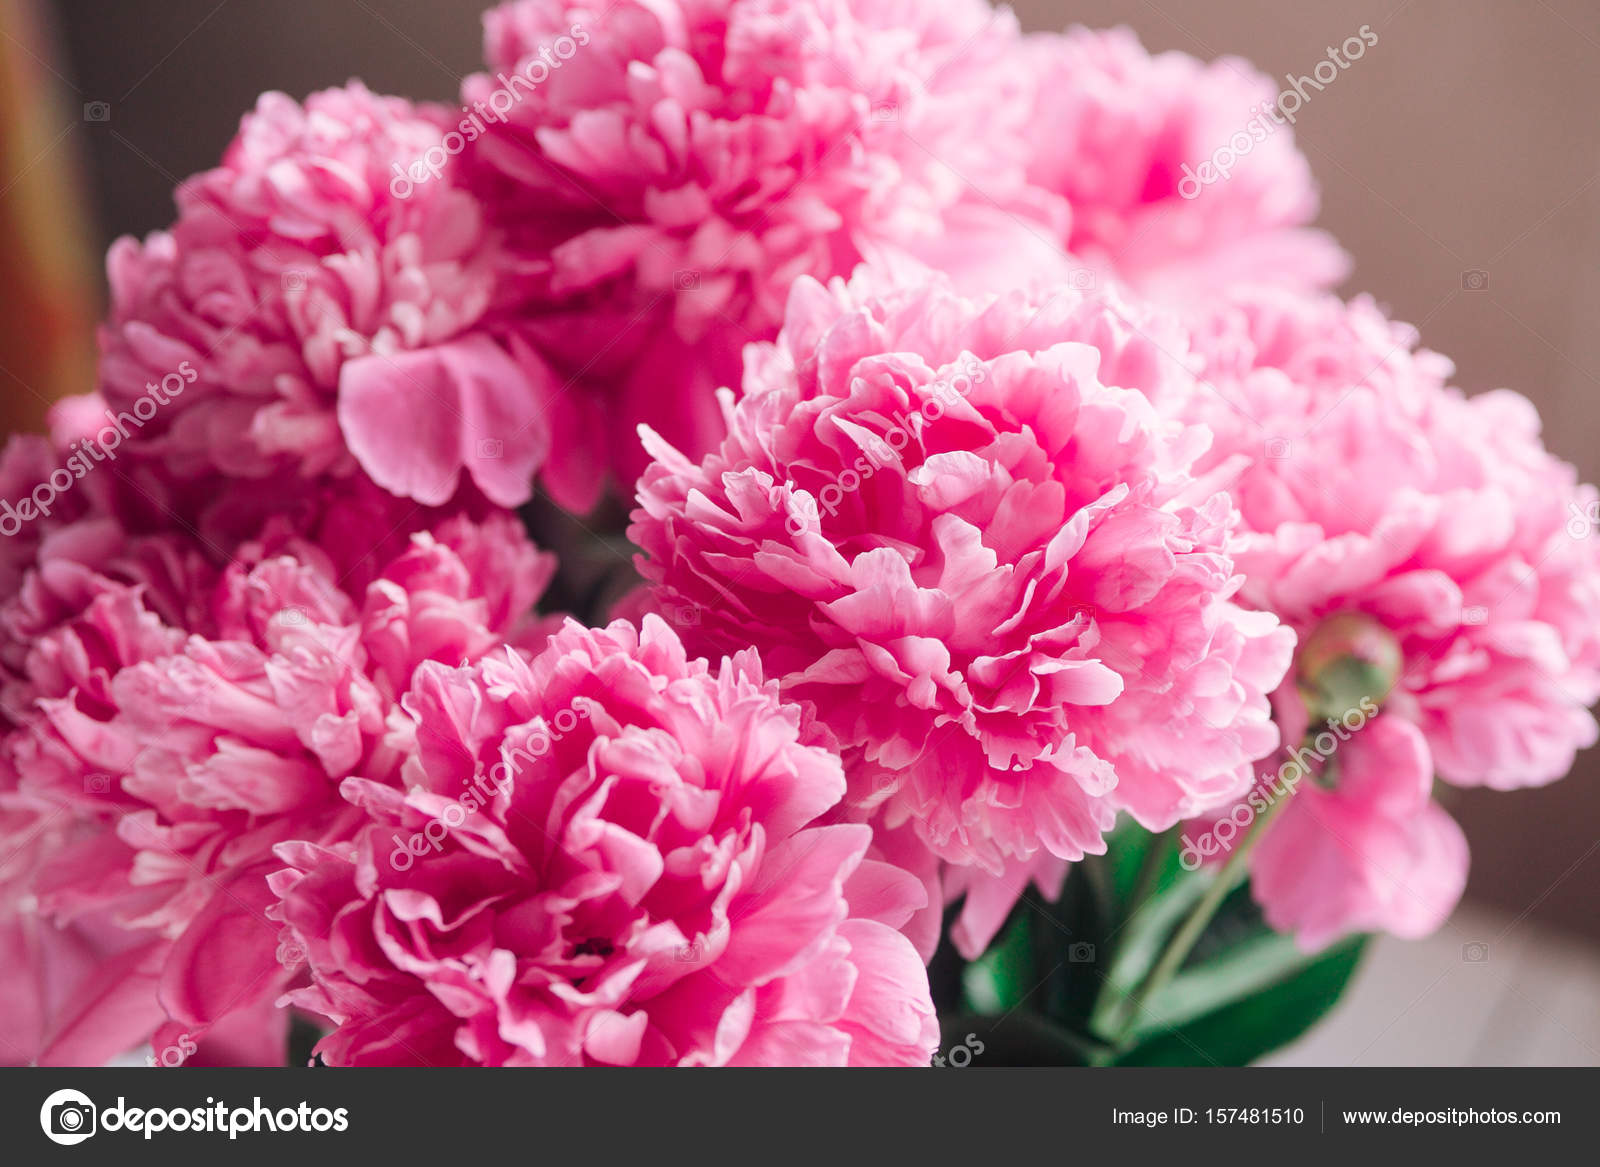 beautiful bouquet of pink peonies.pastel floral wallpaper